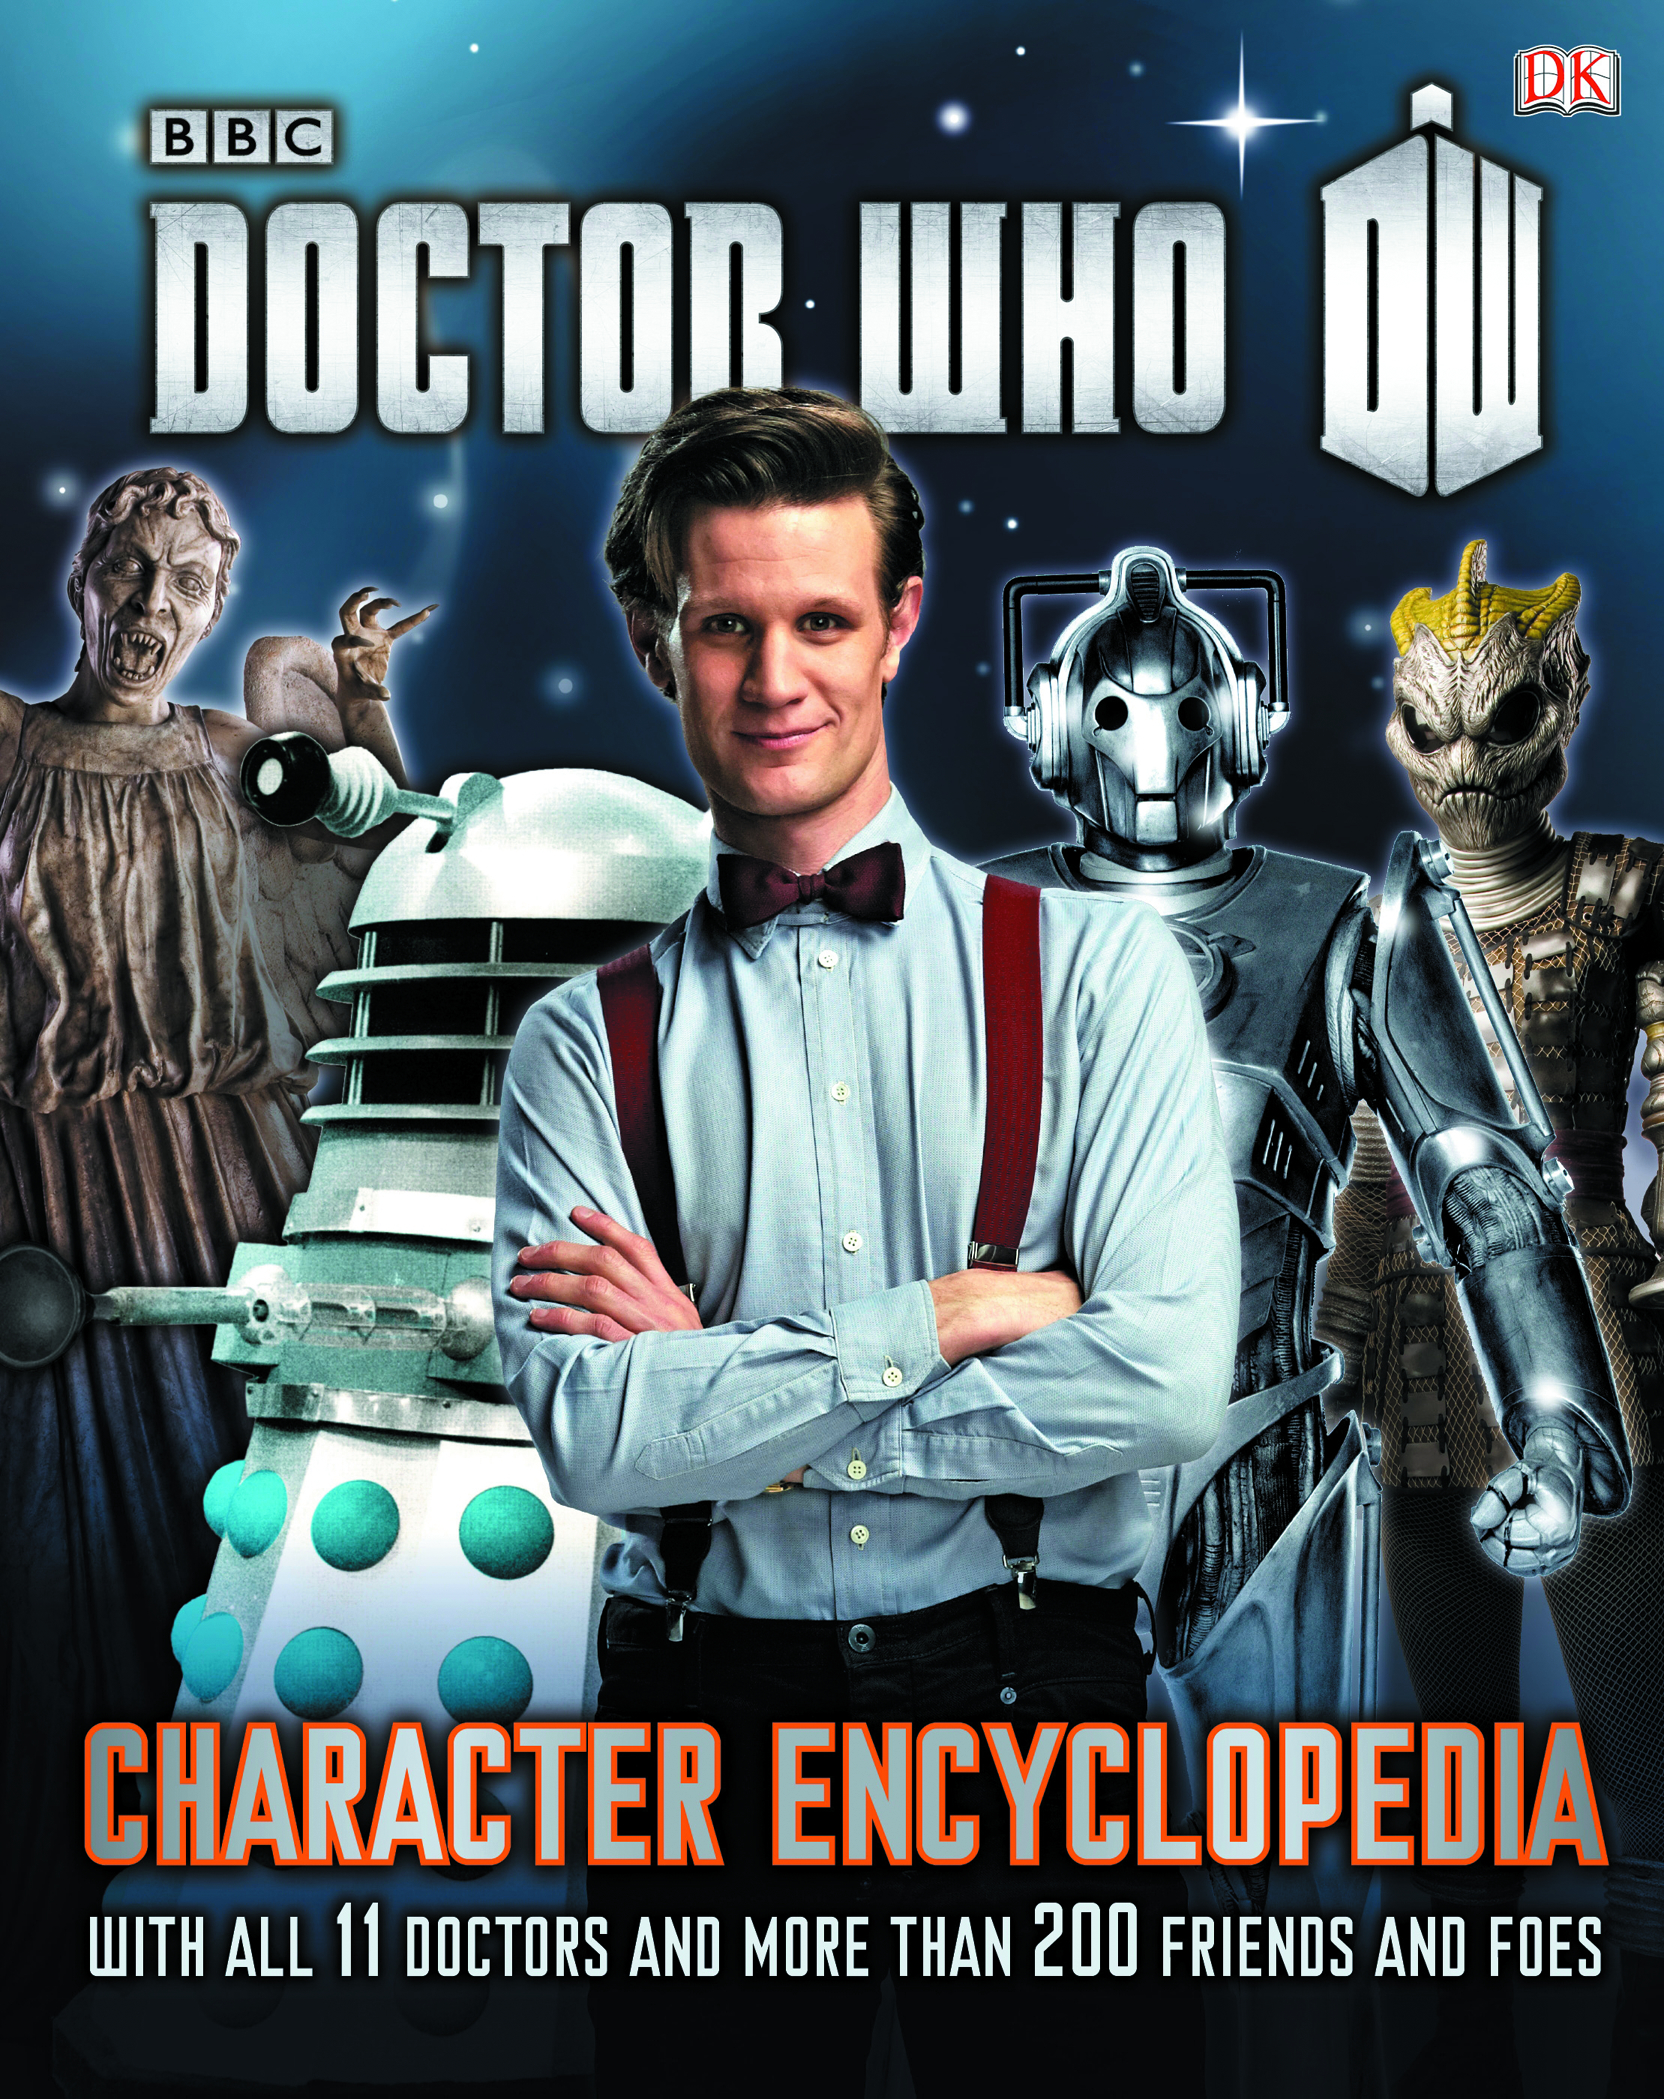 DOCTOR WHO CHARACTER ENCYCLOPEDIA HC